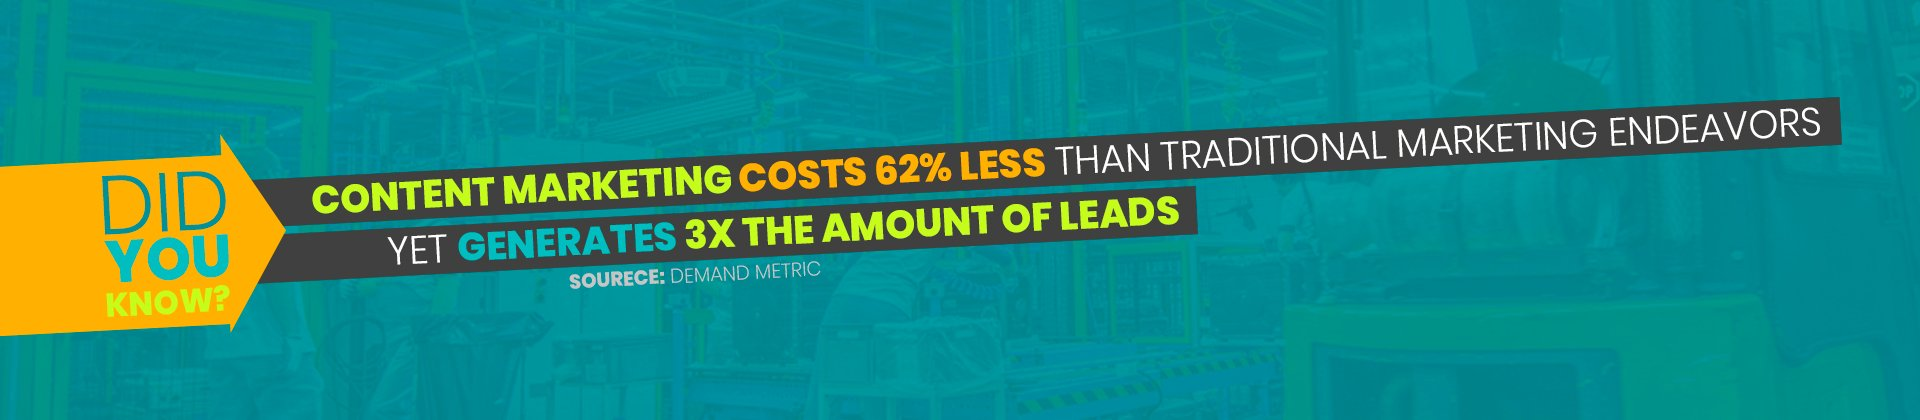 Content marketing costs 62% less than traditional marketing endeavors   yet generates 3x the amount of leads